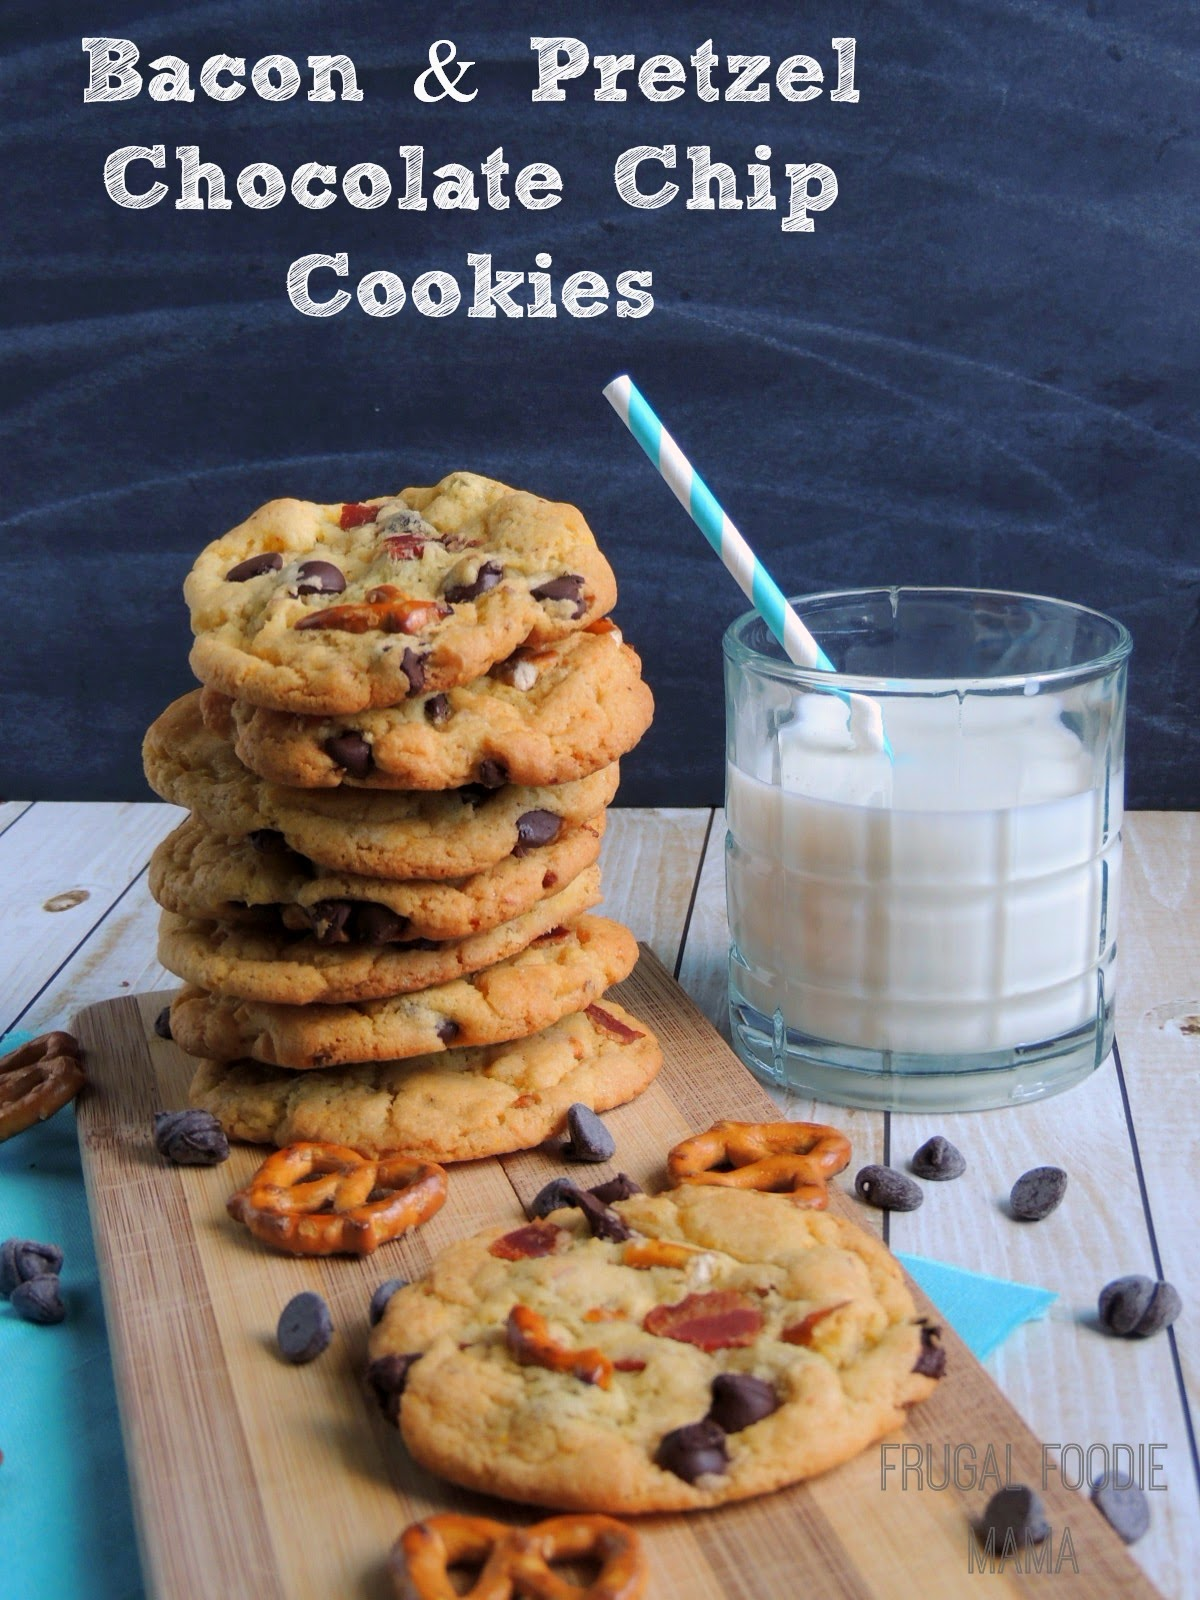 ... chocolate chips in these Bacon & Pretzel Chocolate Chip Cookies